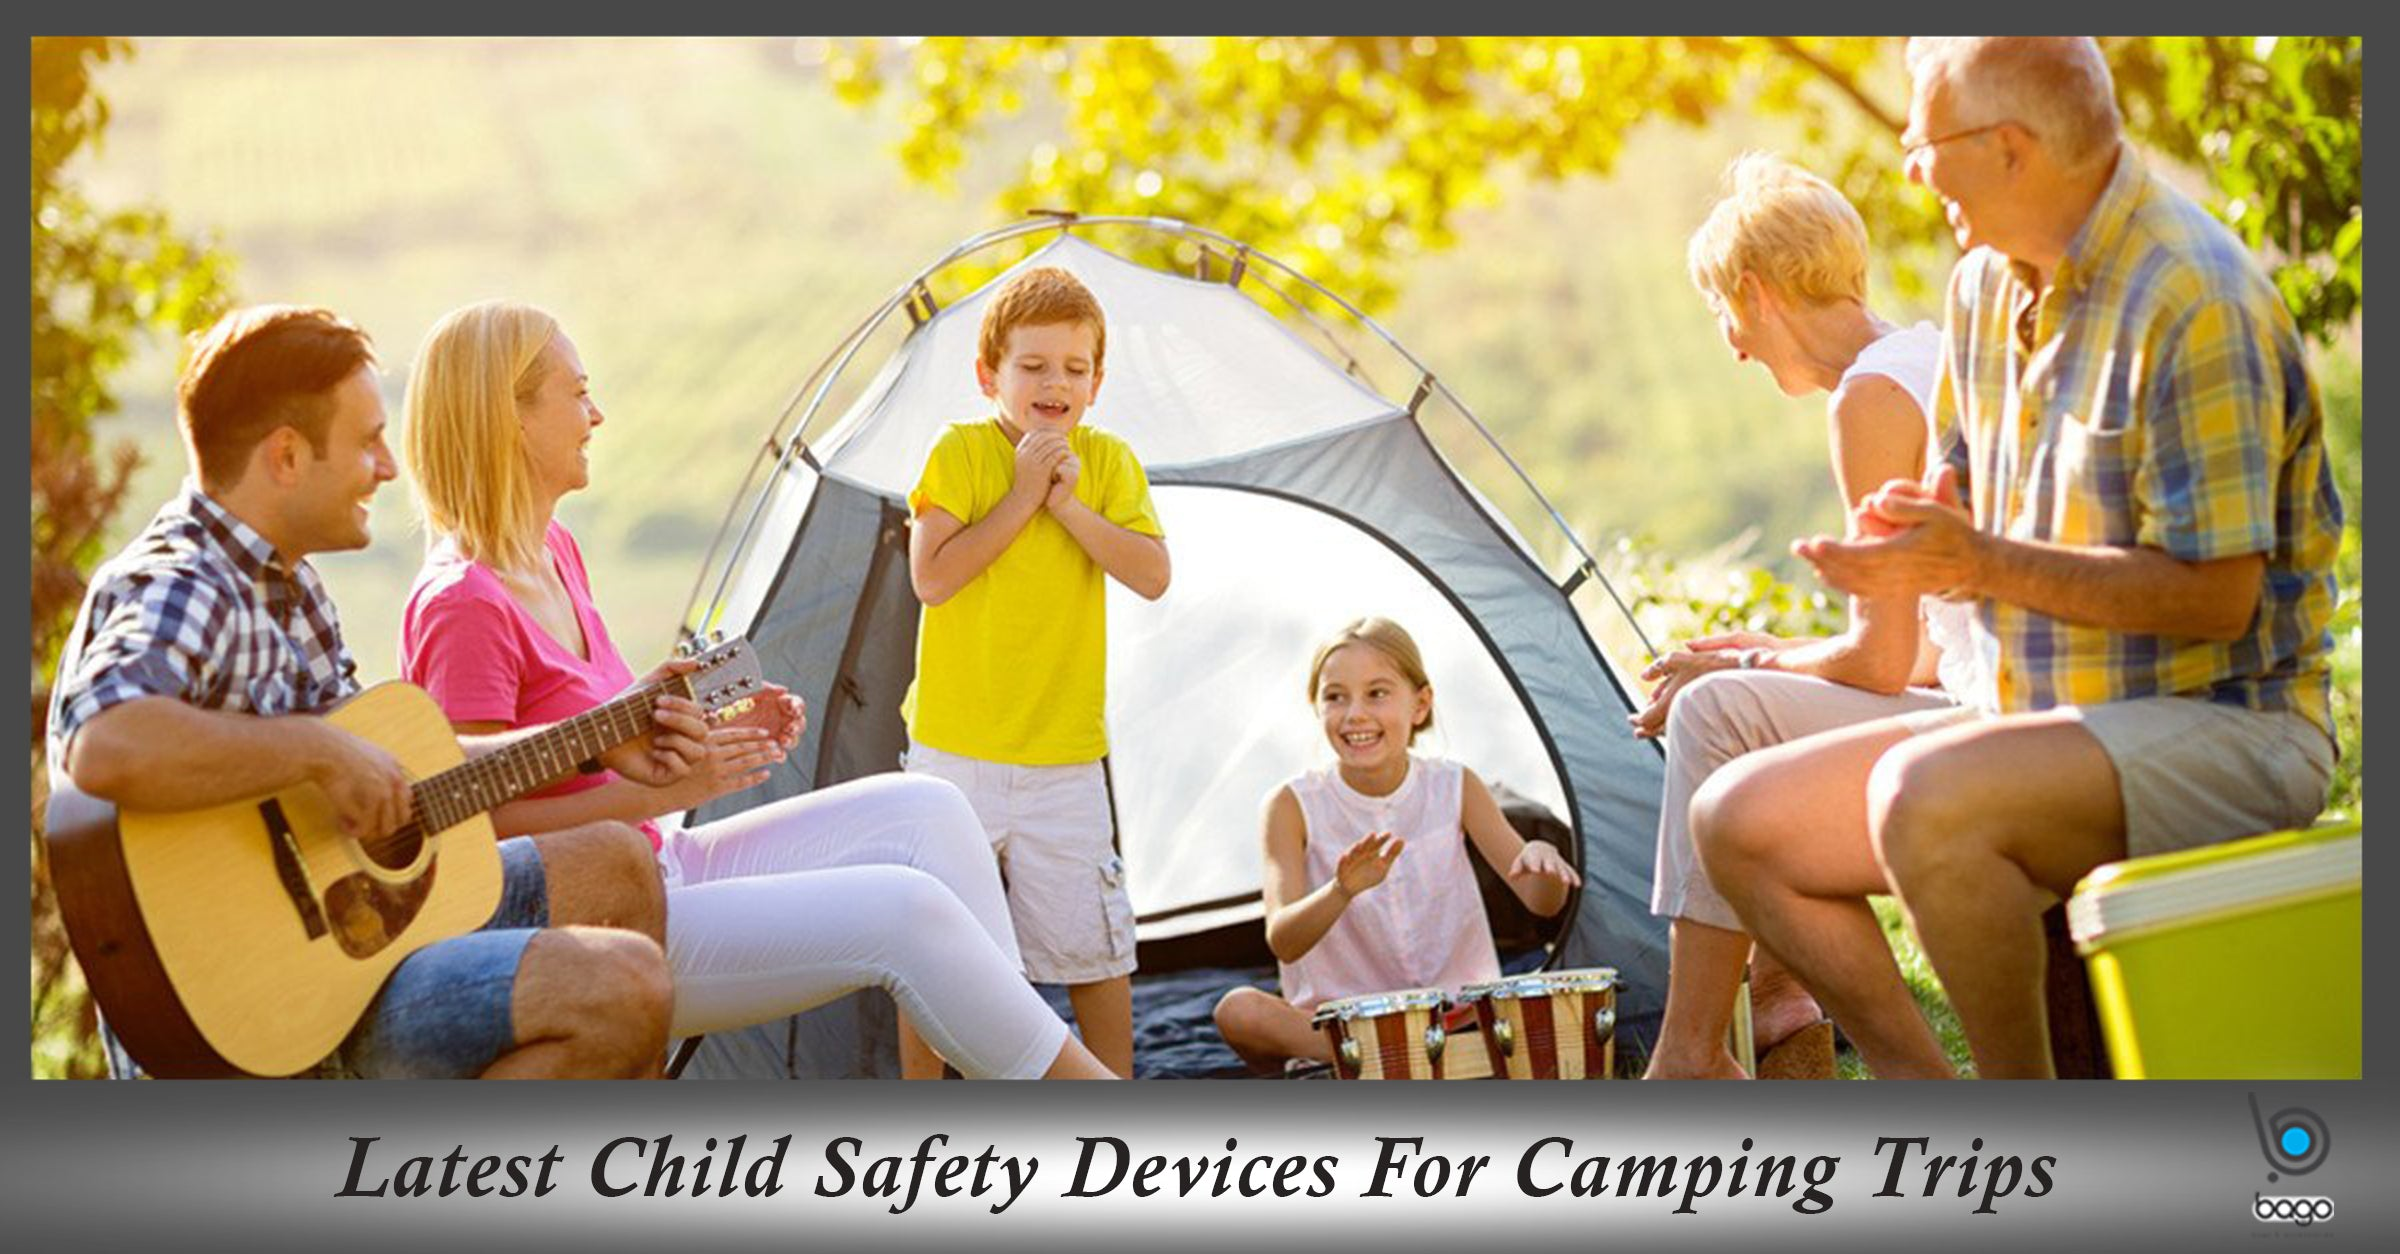 Latest Child Safety Devices For Camping Trips